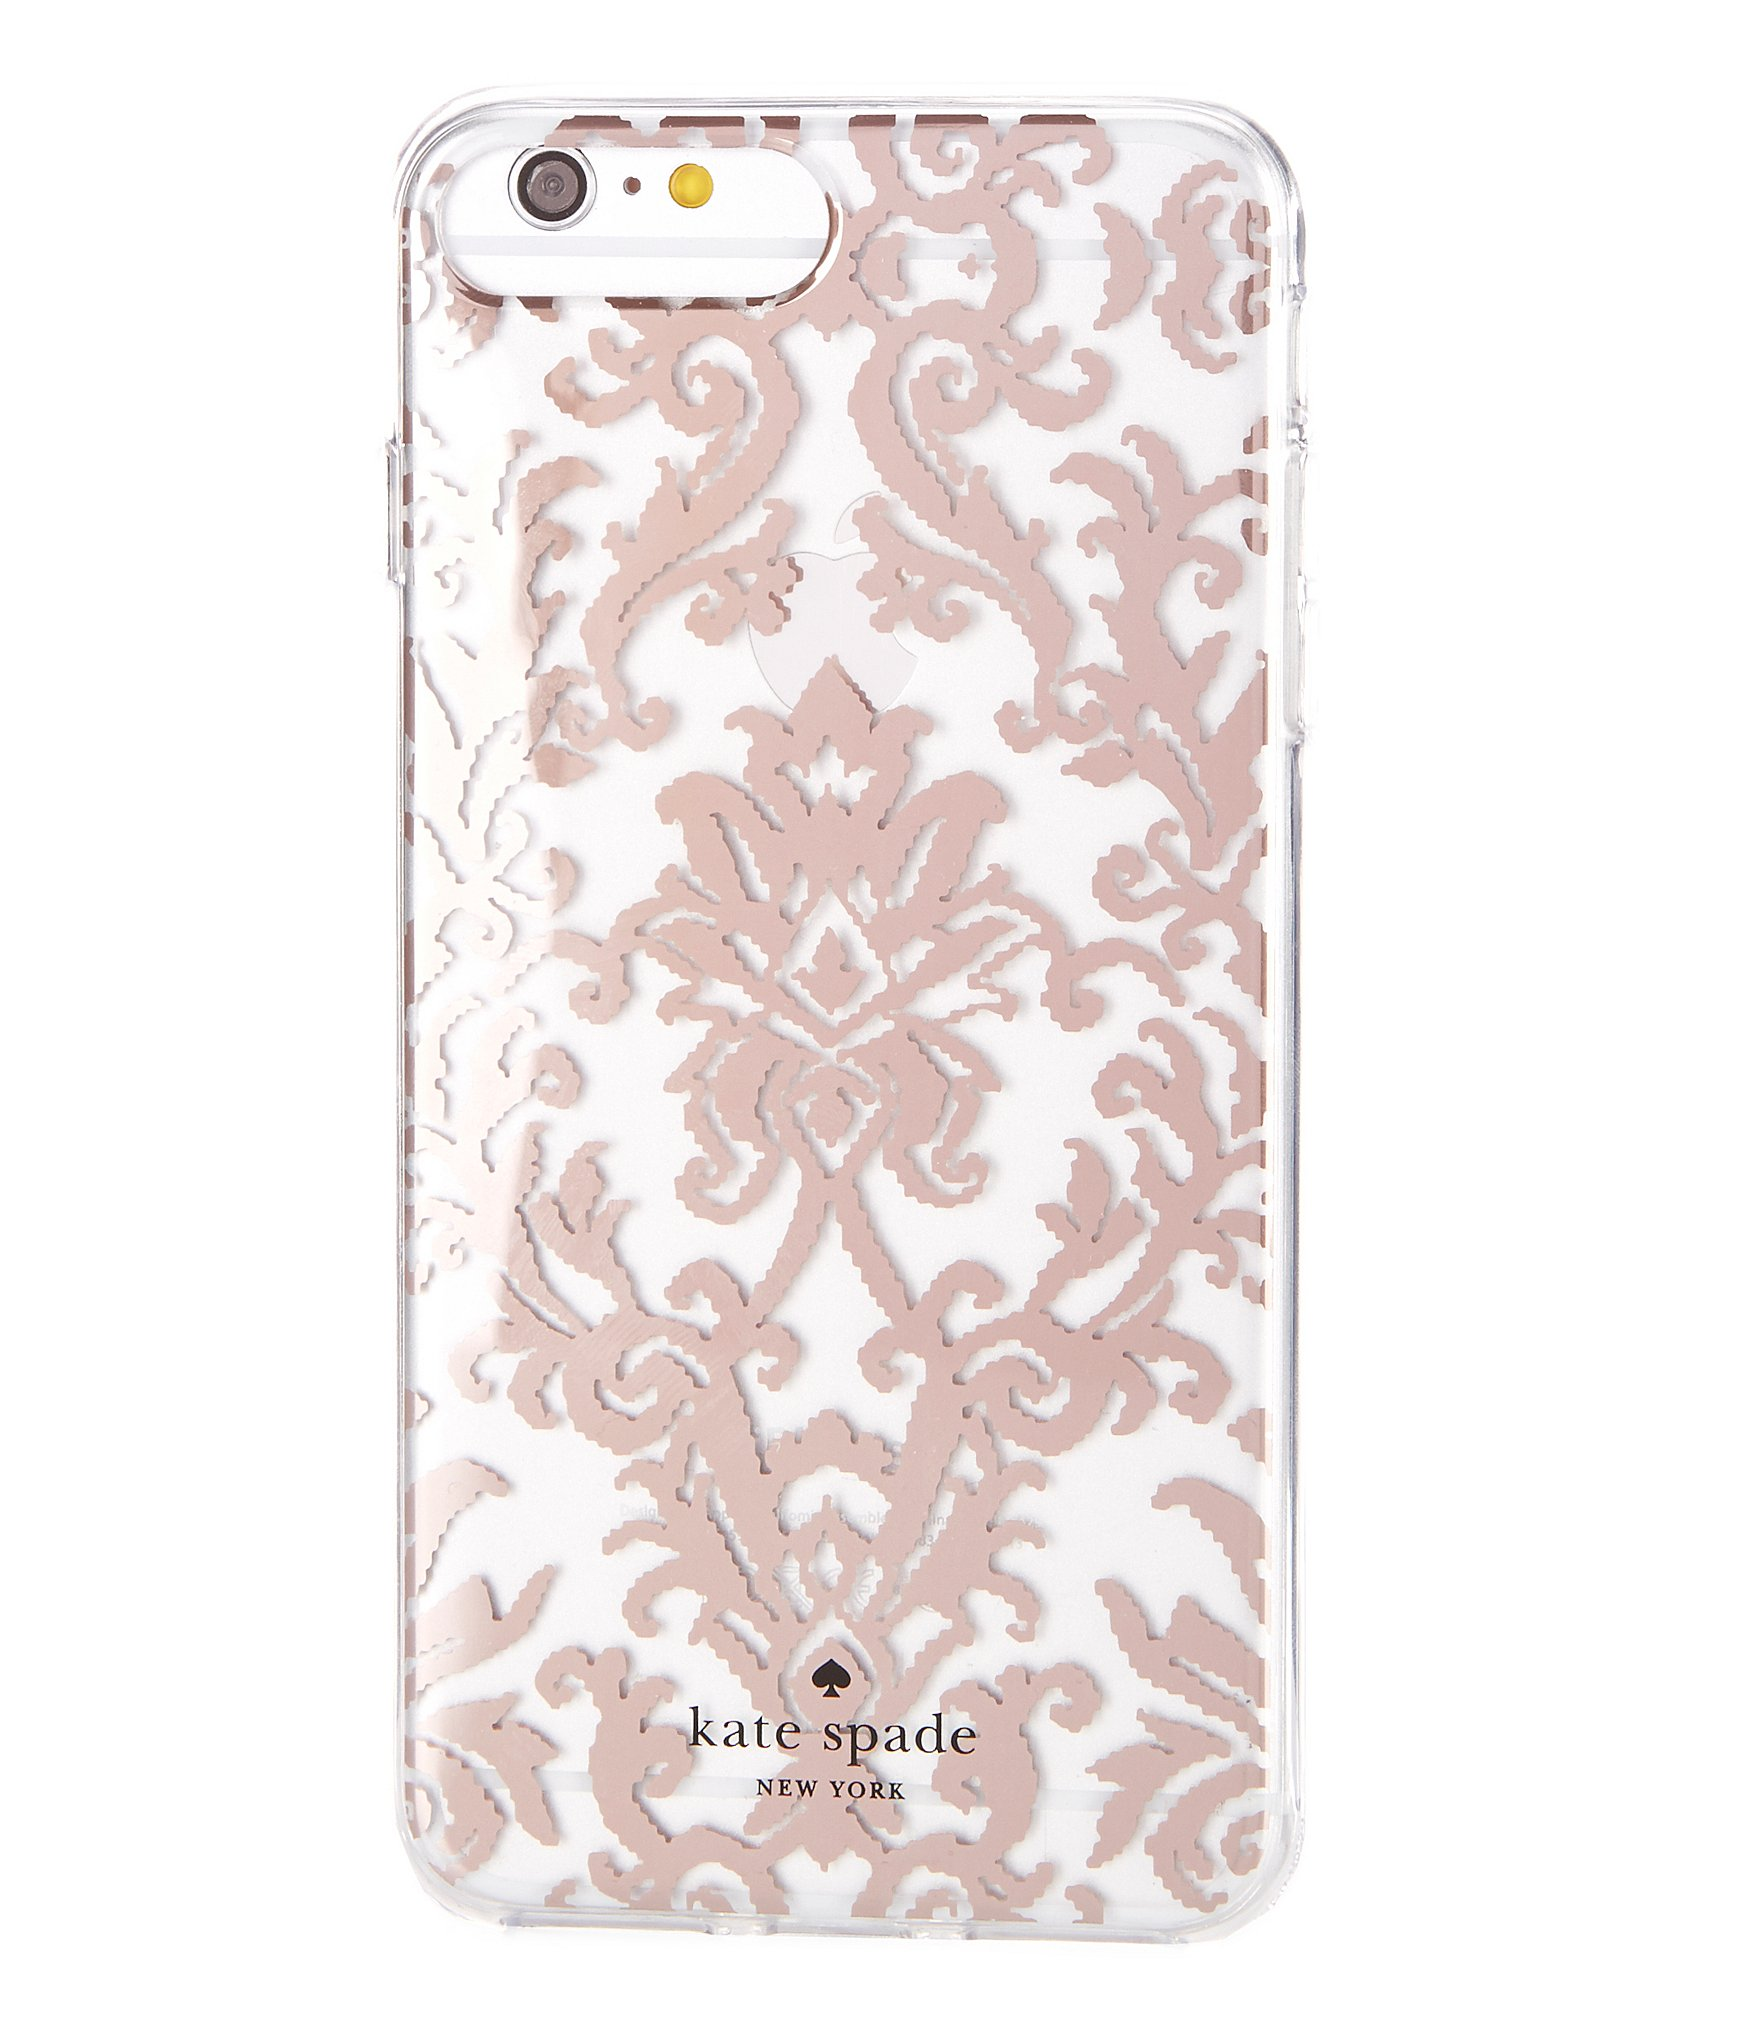 Kate Spade Iphone S Case Rose Gold